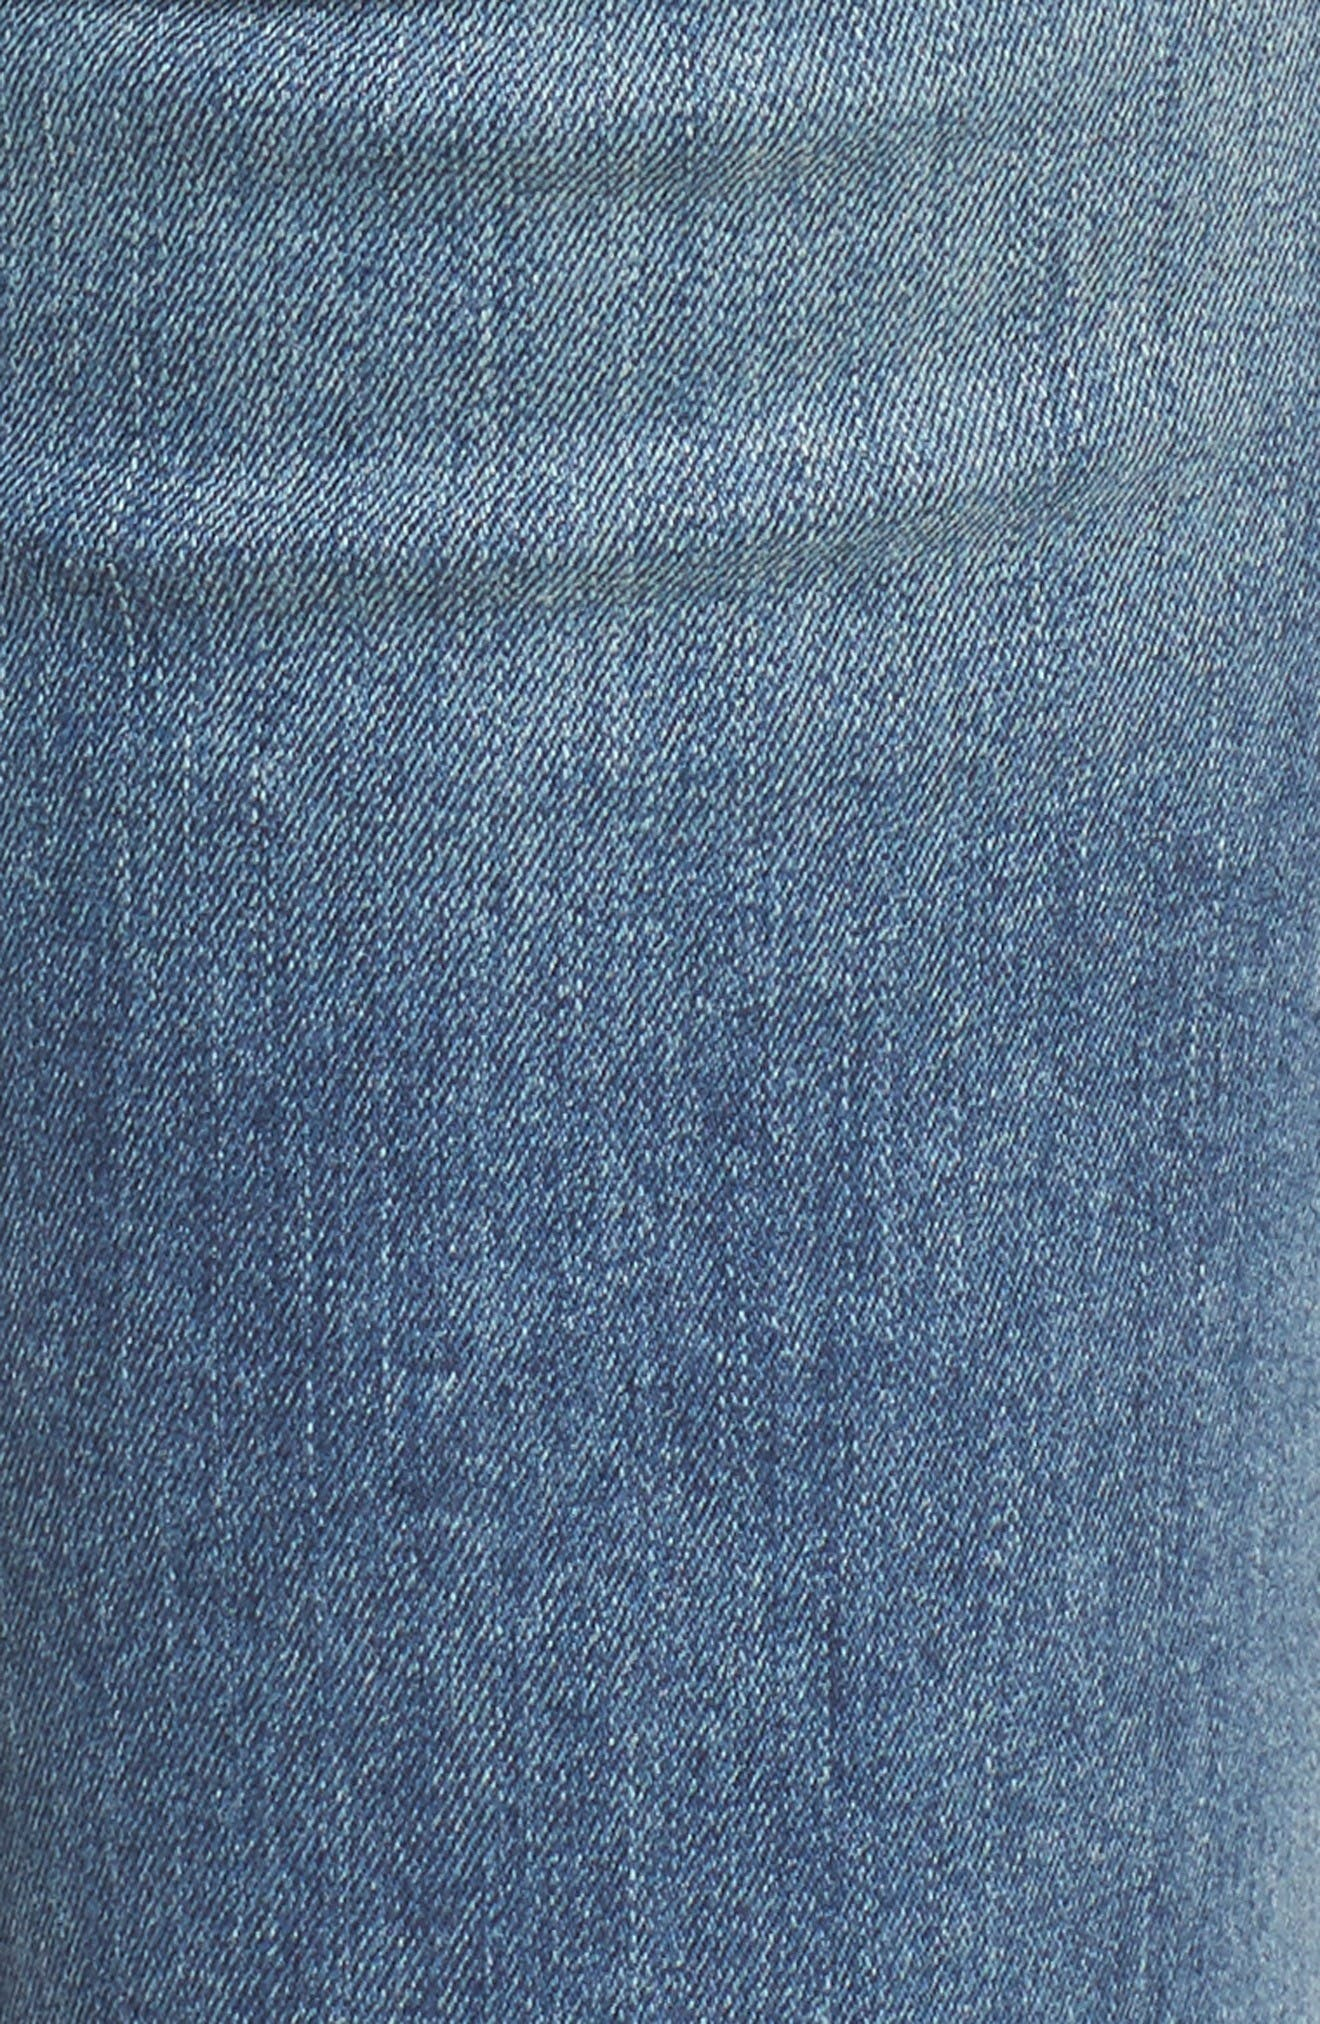 Ava Stretch Skinny Jeans,                             Alternate thumbnail 5, color,                             Liverpool